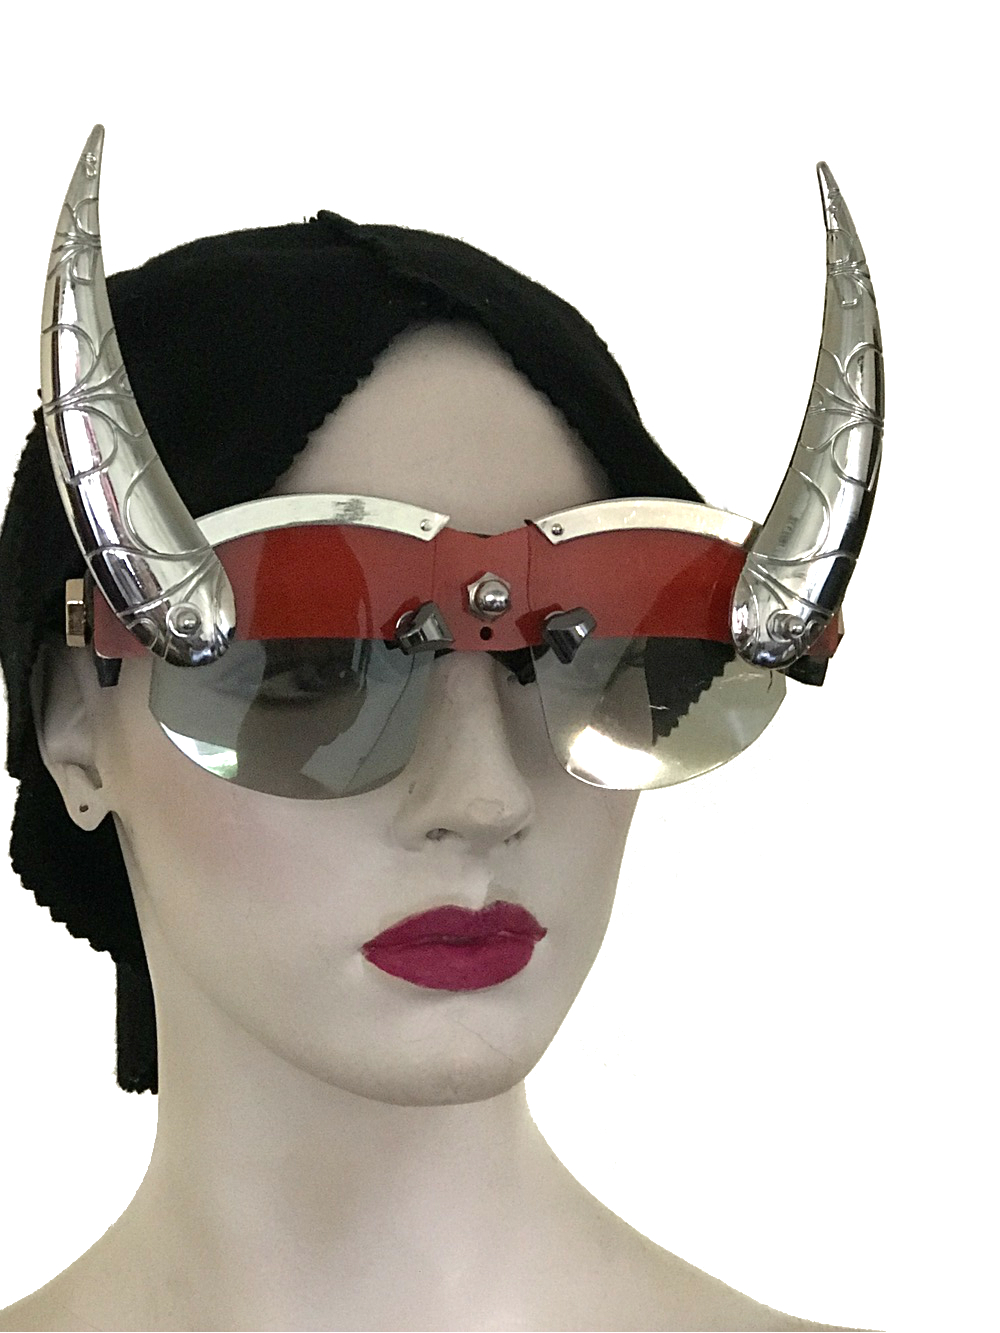 futuristic modern steampunk eyewear for artists devil horns, red face